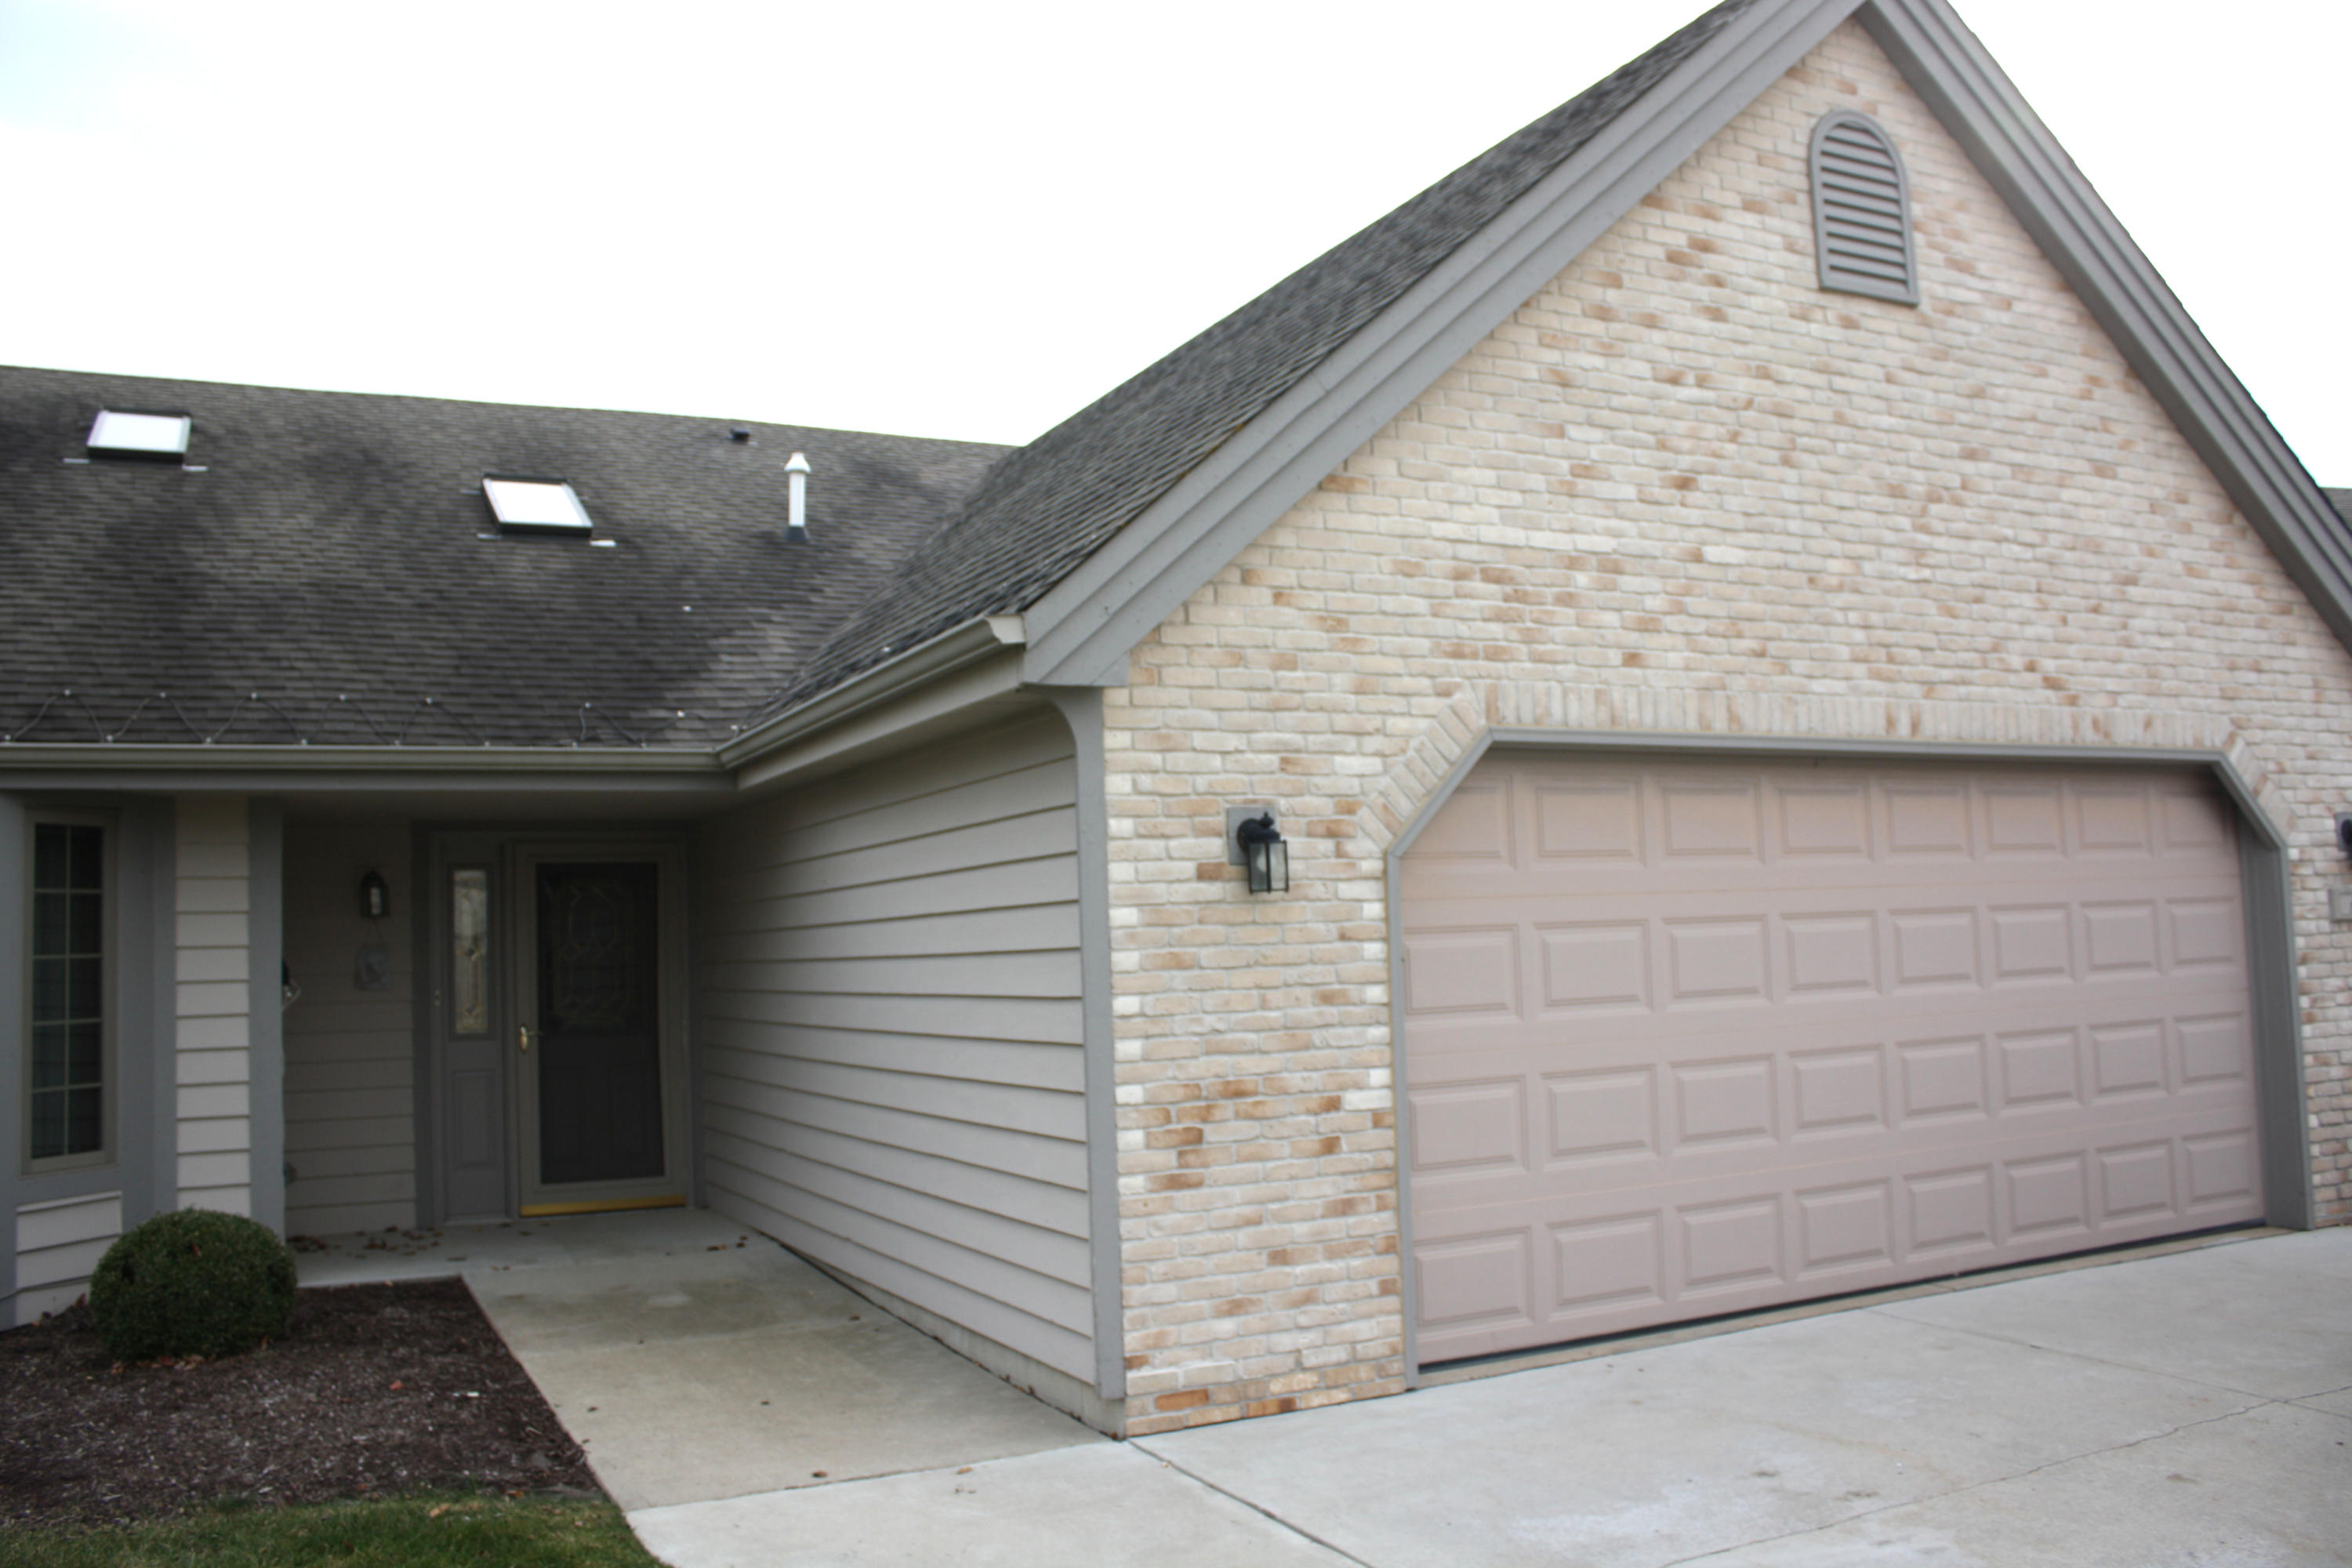 6321 Kingsview Dr, Mount Pleasant, Wisconsin 53406, 2 Bedrooms Bedrooms, 6 Rooms Rooms,2 BathroomsBathrooms,Condominiums,For Sale,Kingsview Dr,1,1719677